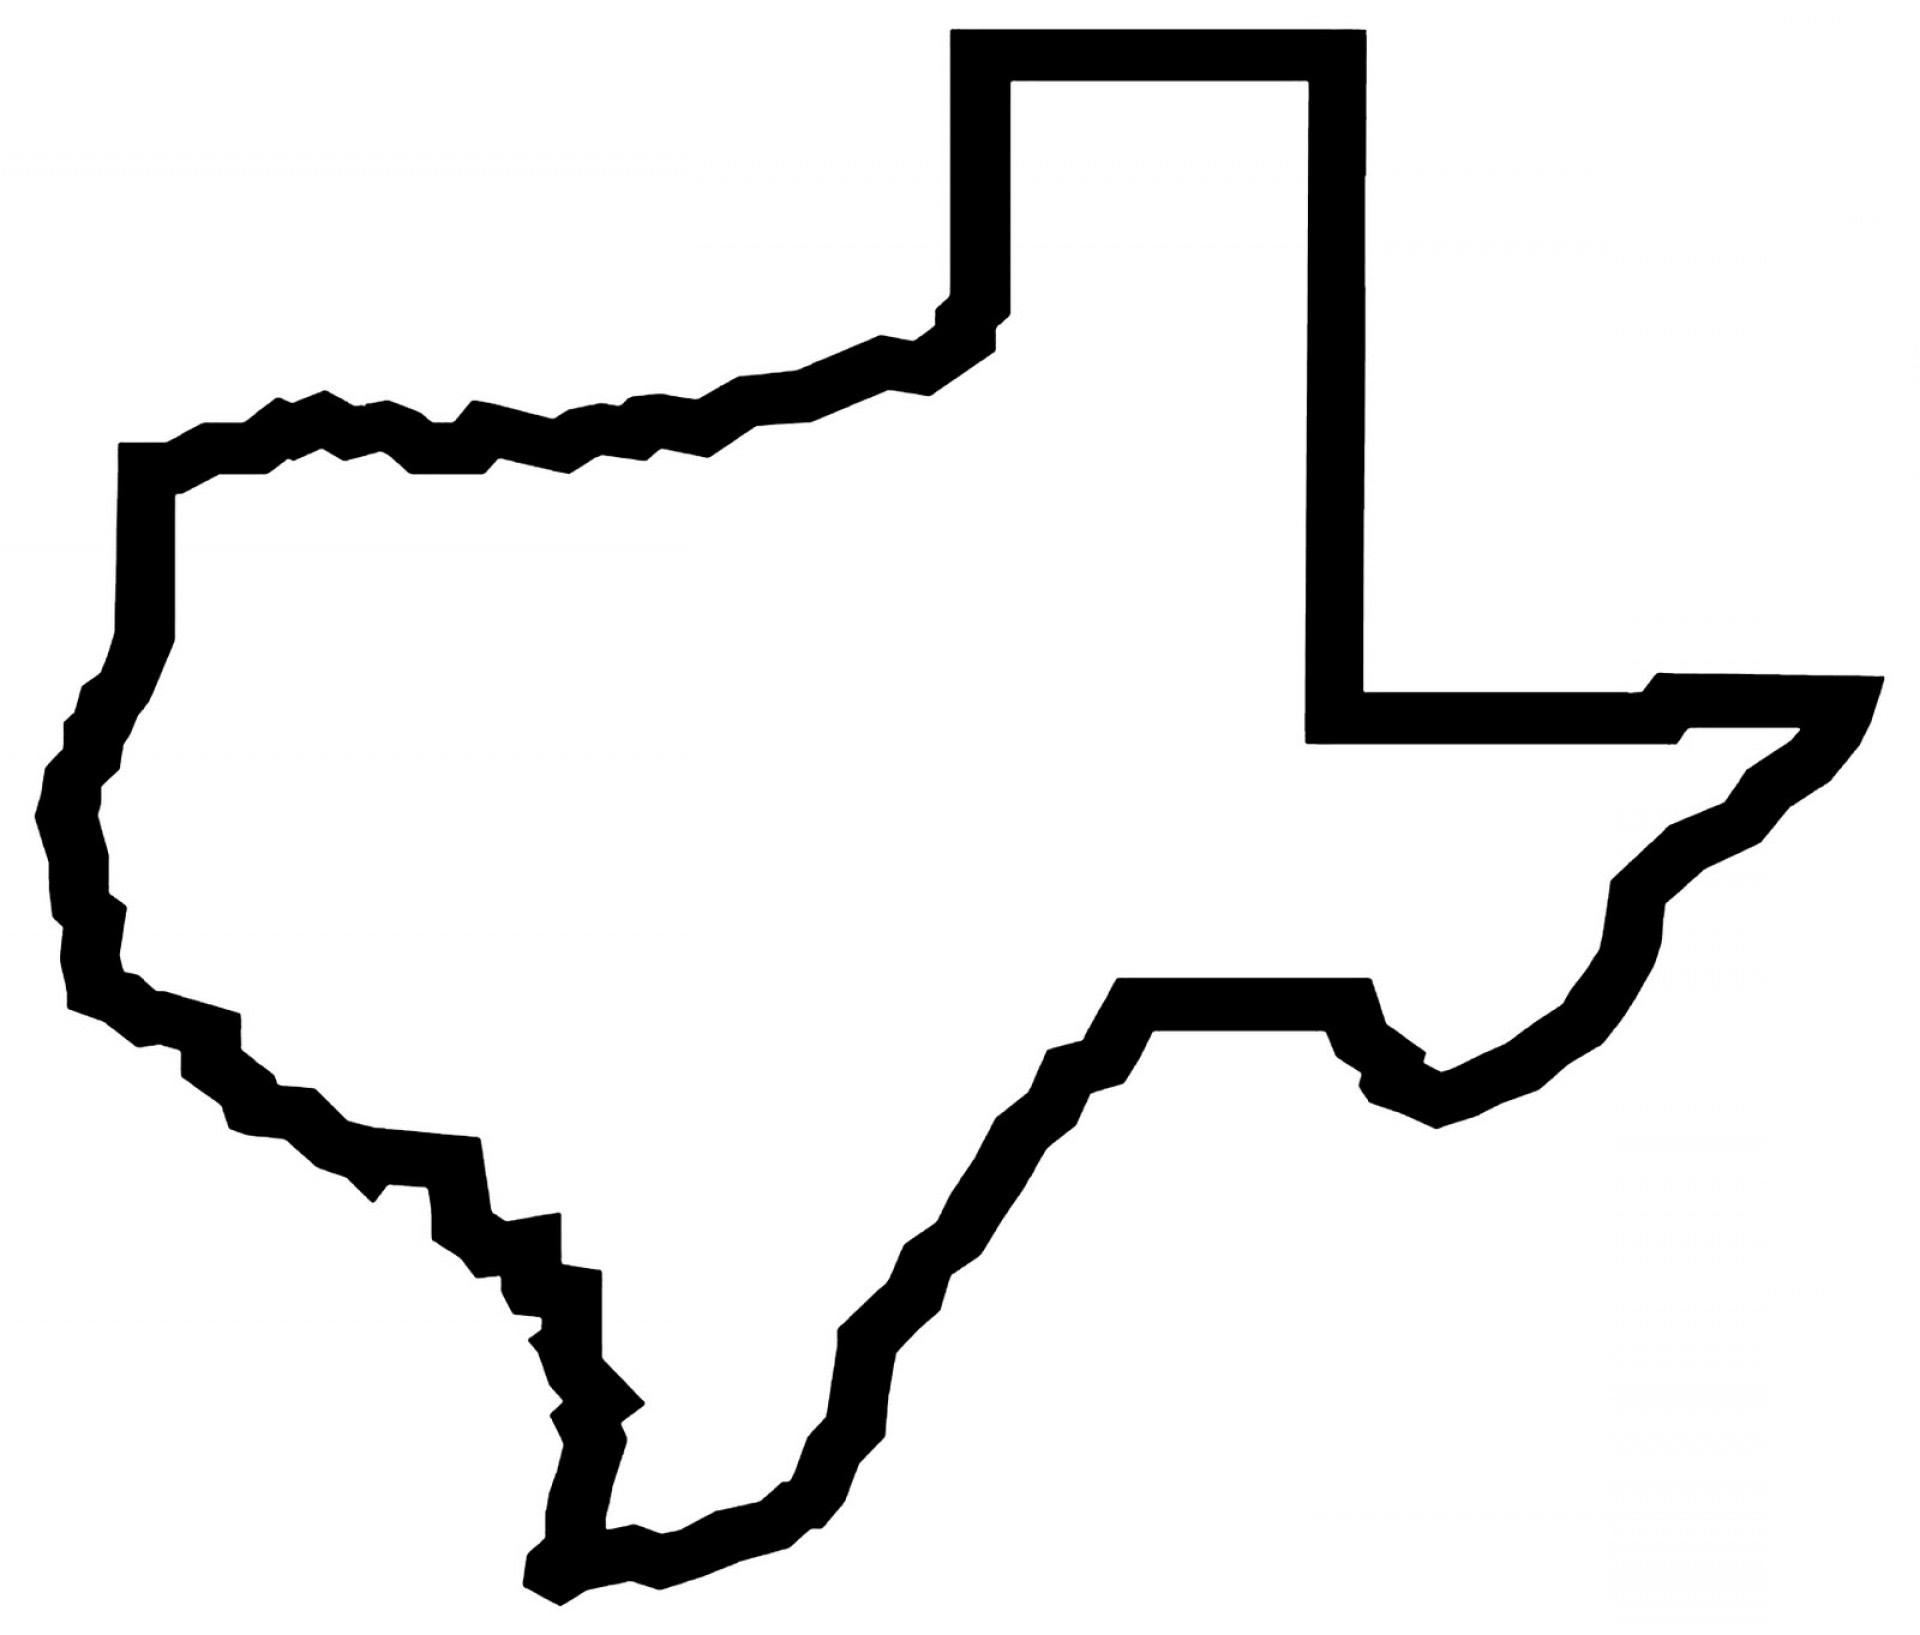 State Of Texas Outline, Exclusive State Of Texas Vector Graphics Design Vectorealy Clip Art, State Of Texas Outline